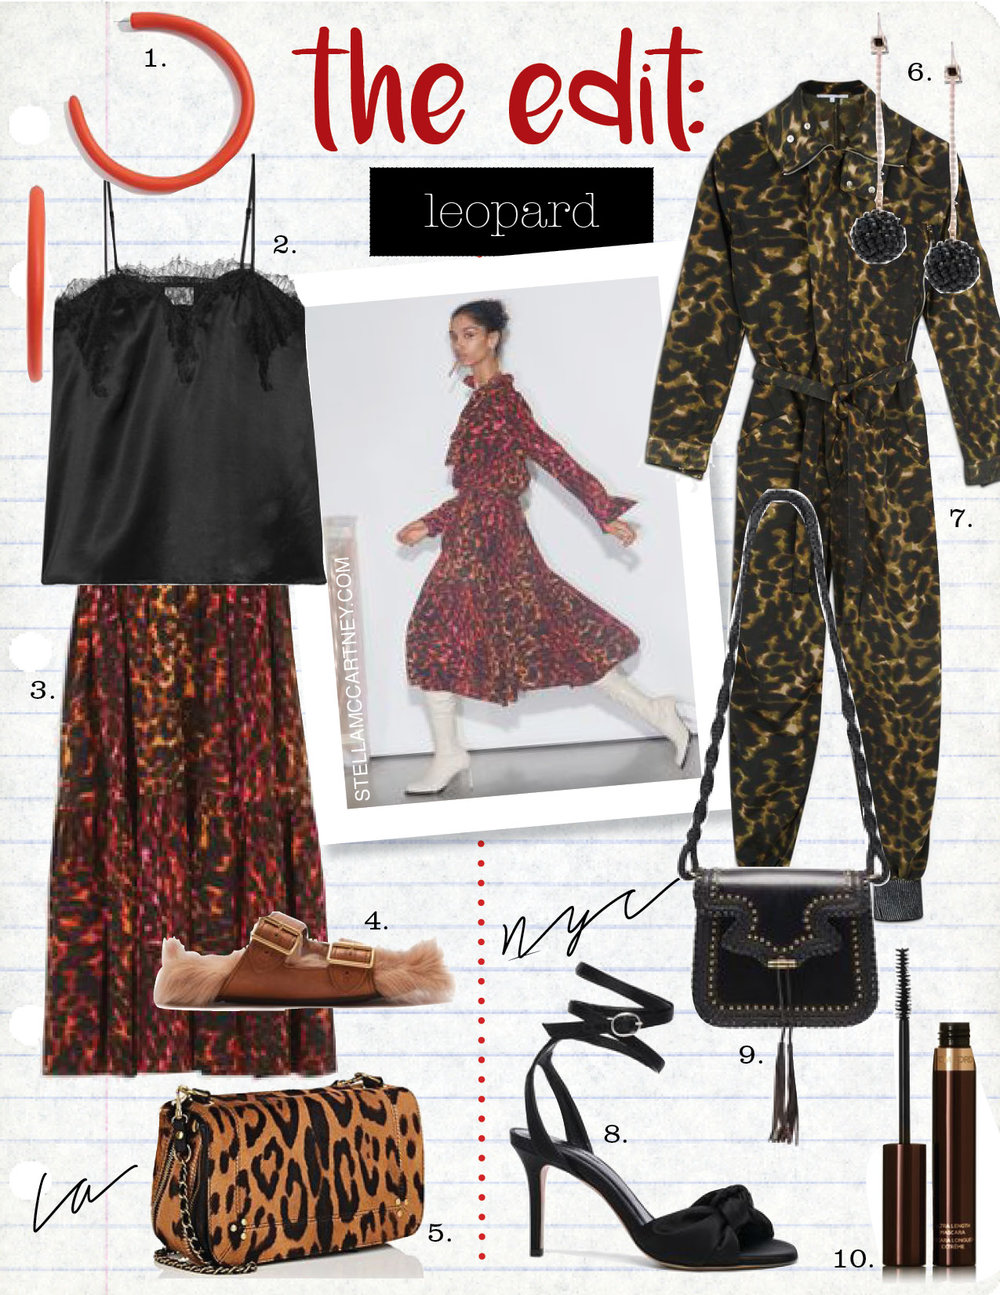 1. dinosaur designs extra large loop earrings, $185,  shopbop.com  2. cami nyc the sweetheart lace-trimmed silk camisole, $160,  net-a-porter.com  3. stella mccartney tanya leopard camouflage skirt, $1175,  stellamccartney.com  4. prada shearling-lined leather sandals, $847,  matchesfashion.com  5. jerome dreyfuss bobi small calf hair shoulder bag, $980,  barneys.com  6. isabel marant ada earrings in black, $395,  fwrd.com  7. stella maccartney ally camouflage jumpsuit, $1790,  stellamccartney.com  8. isabel marant satin abenya heels in black, $740,  fwrd.com  9. ulla johnson esti shoulder bag, $895,  ullajohnson.com  10. tom ford beauty ultra length mascara, $46,  net-a-porter.com